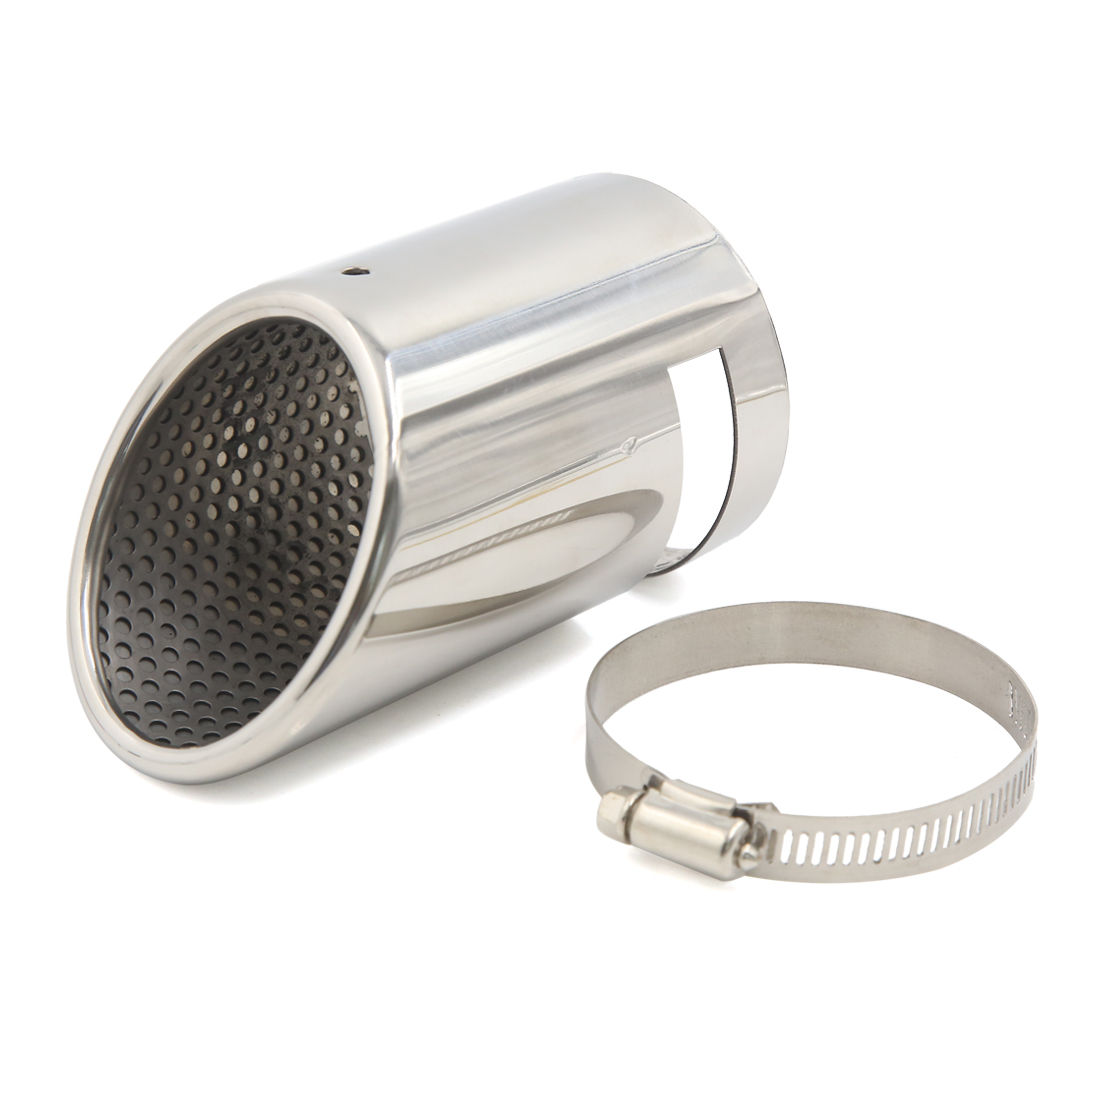 """73mm 2.9"""" Inlet Welding Bevel Outlet Tip Car Tail Exhaust Muffler Pipe"""